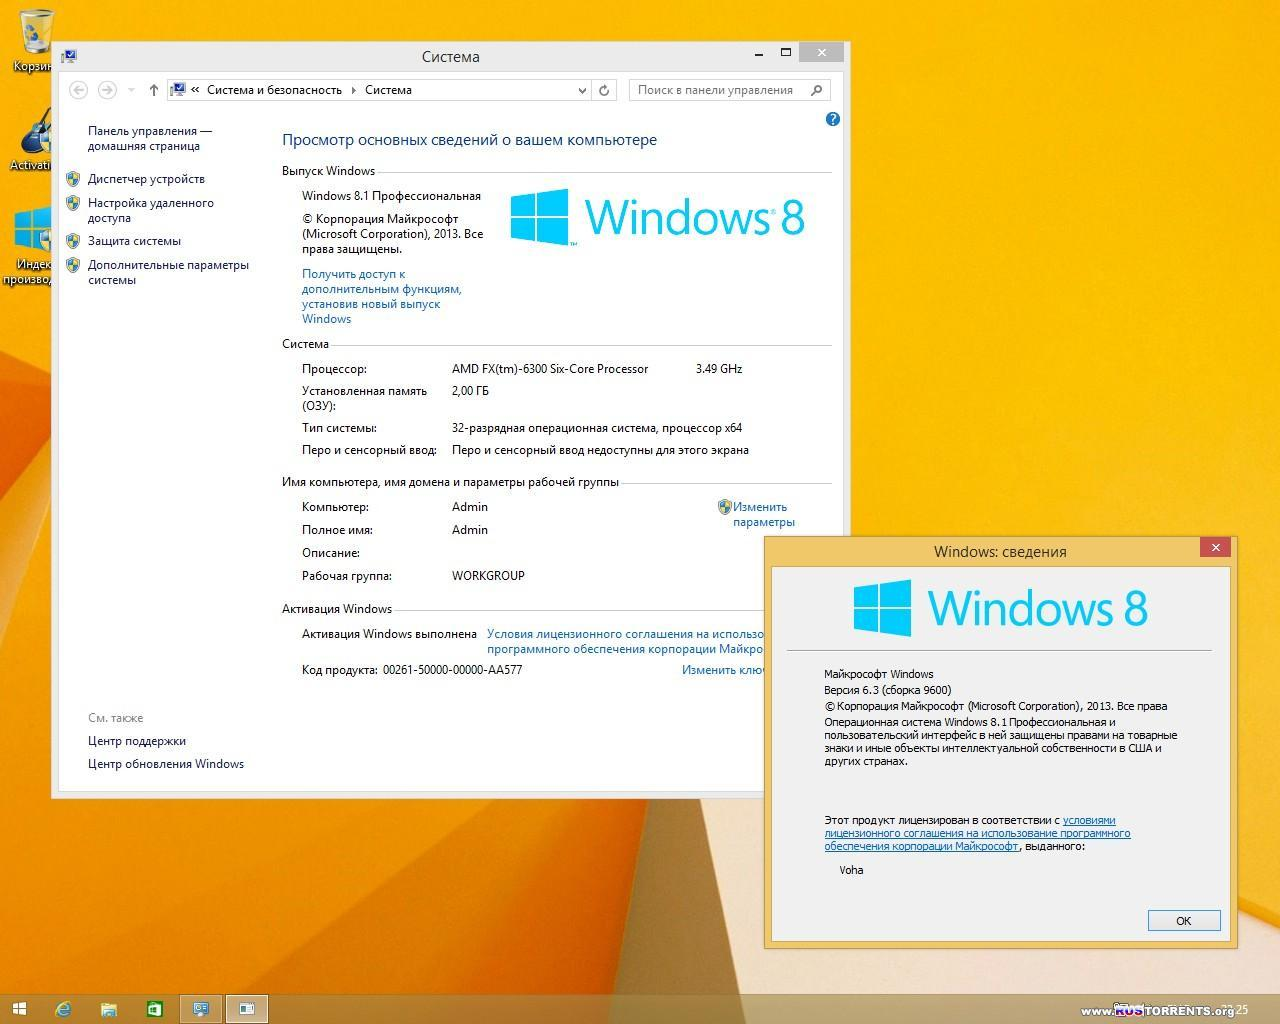 Windows 8.1 with Update 6.3.9600.17031 (Core,Pro,Enterprise) 6 in 1 by Kyvaldiys �86/�64 (13.04.2014) RUS